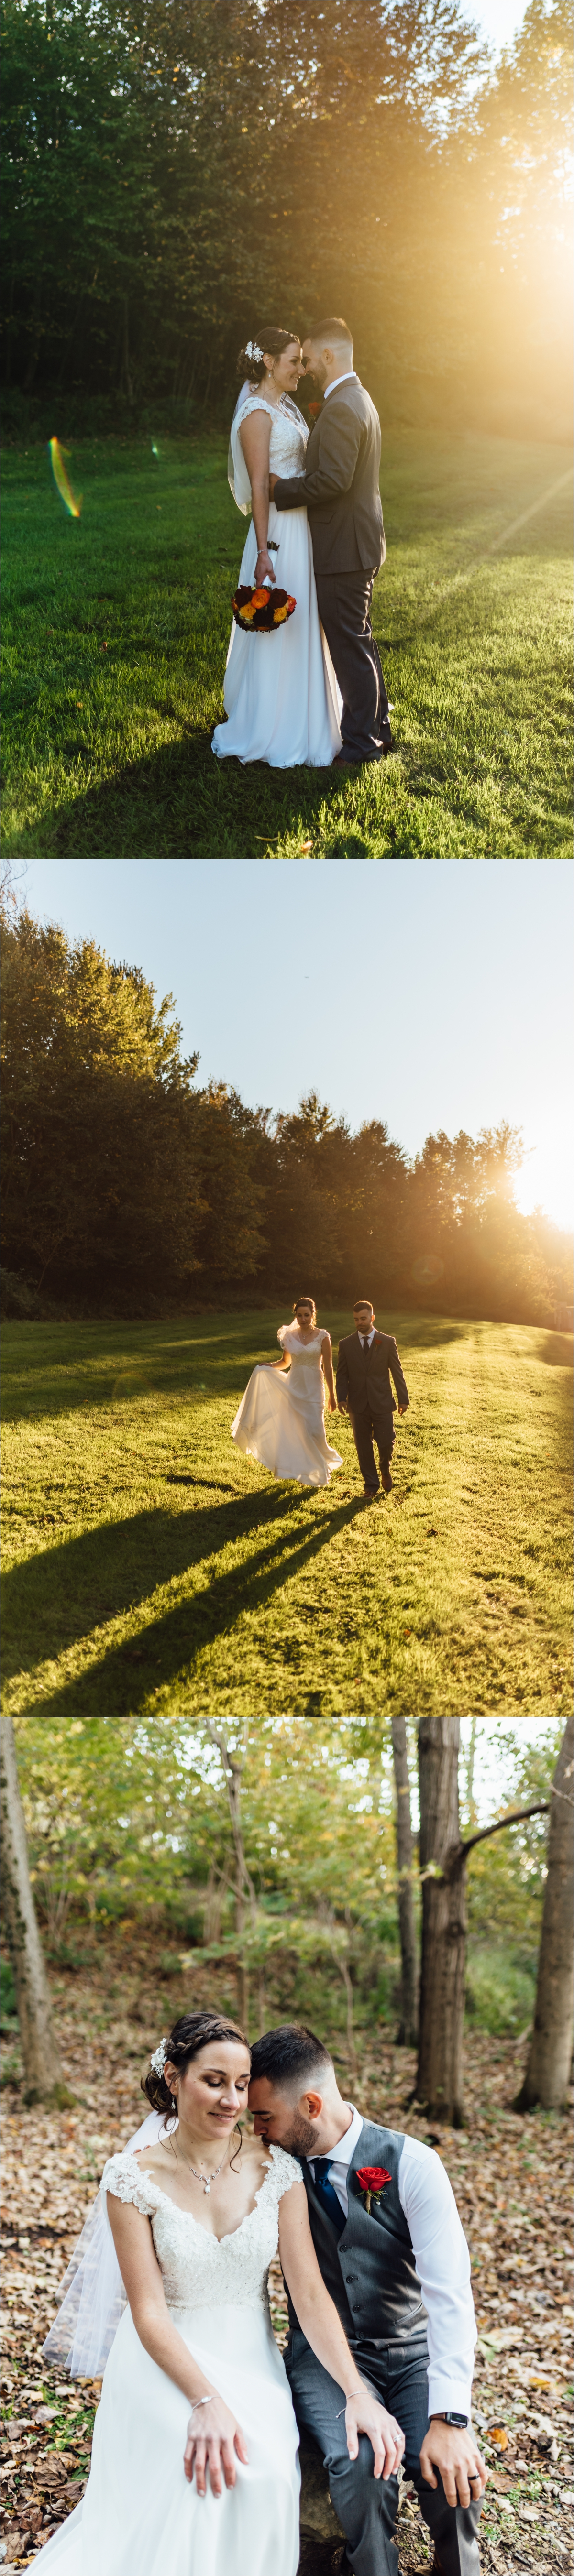 Sarah_&_Doug_Stroudsberg_Wedding_the_photo_farm_0063.jpg